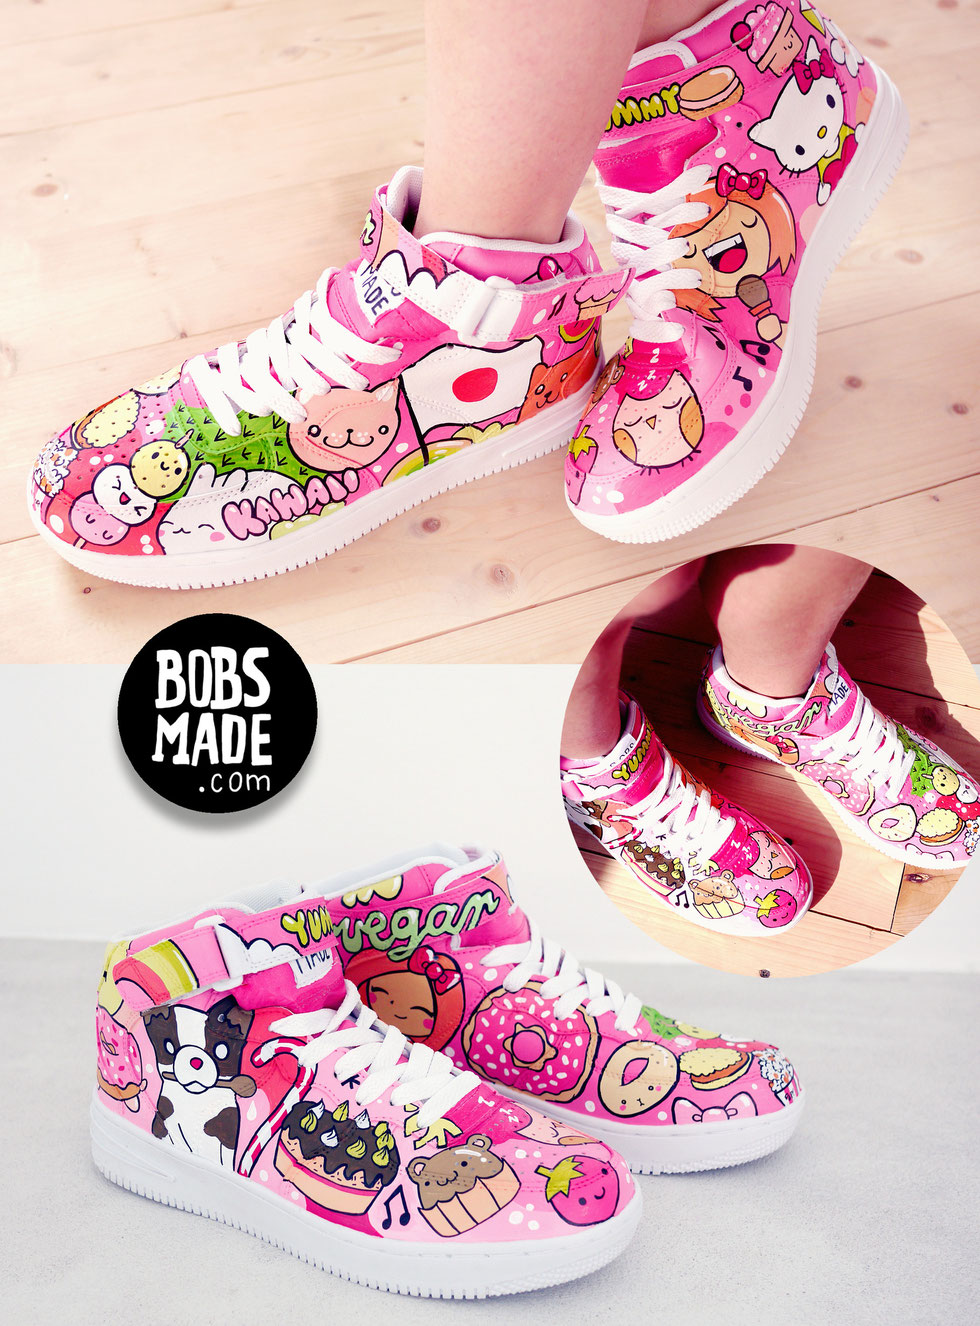 bobsmade candy sneaker